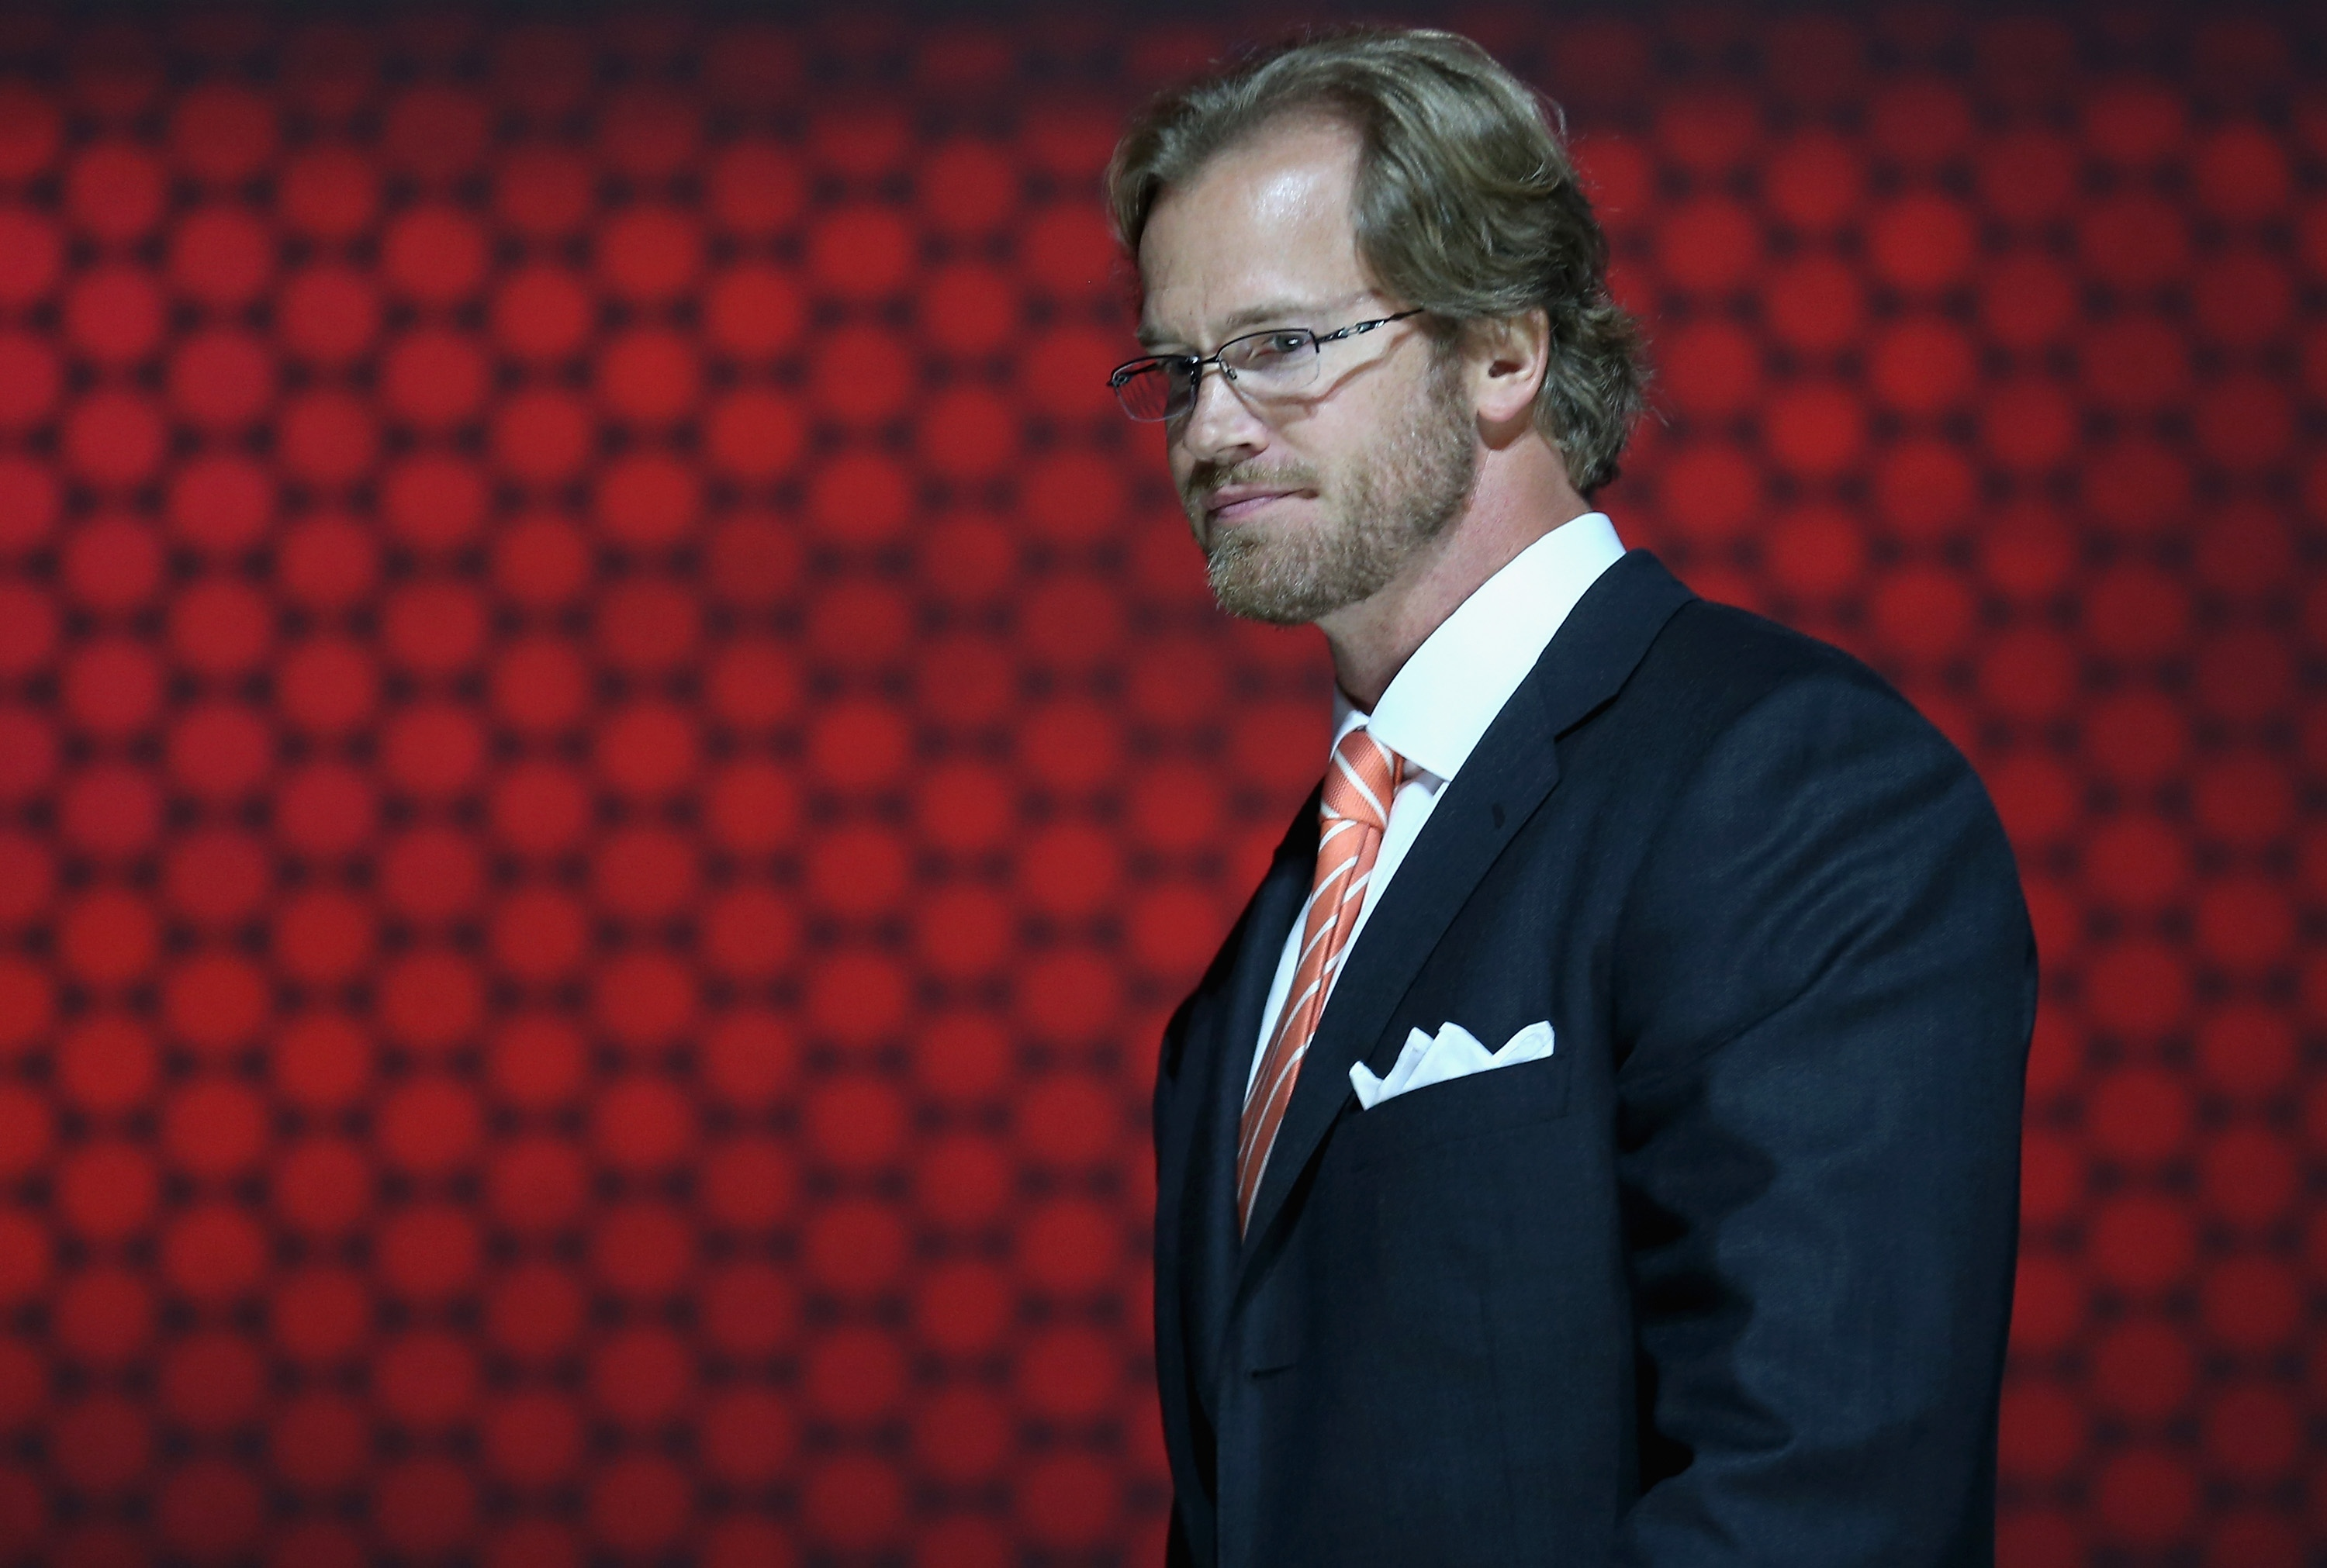 No PR Move For Pronger: The NHL's Newest Employee Is Serious About His Job, And Perfect For It